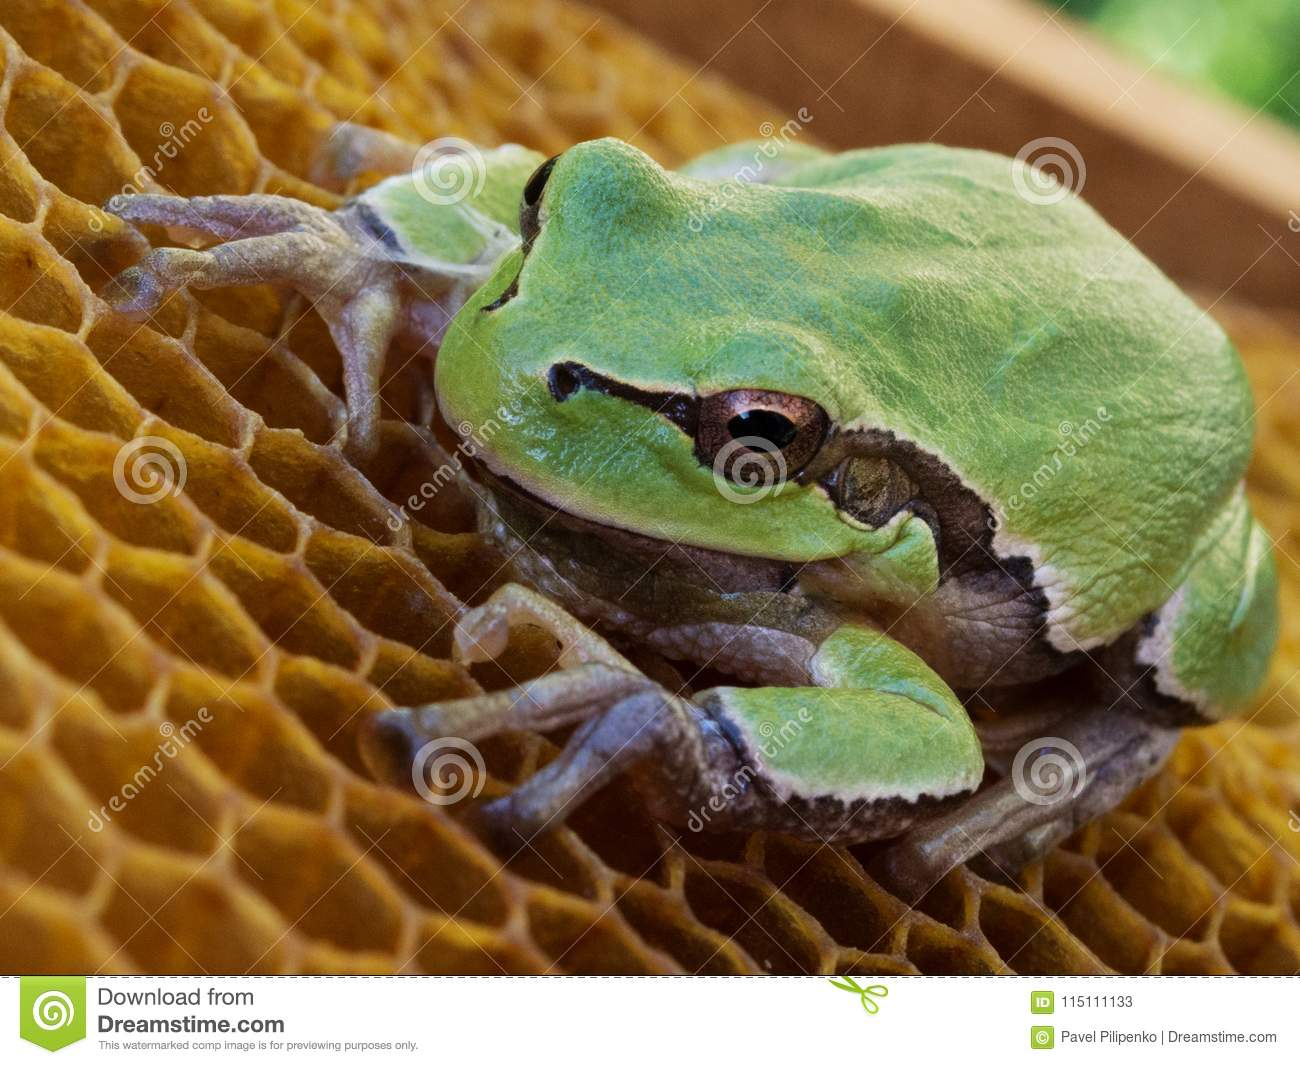 The Green Frog Sits On The Empty Wax Hives Stock Image